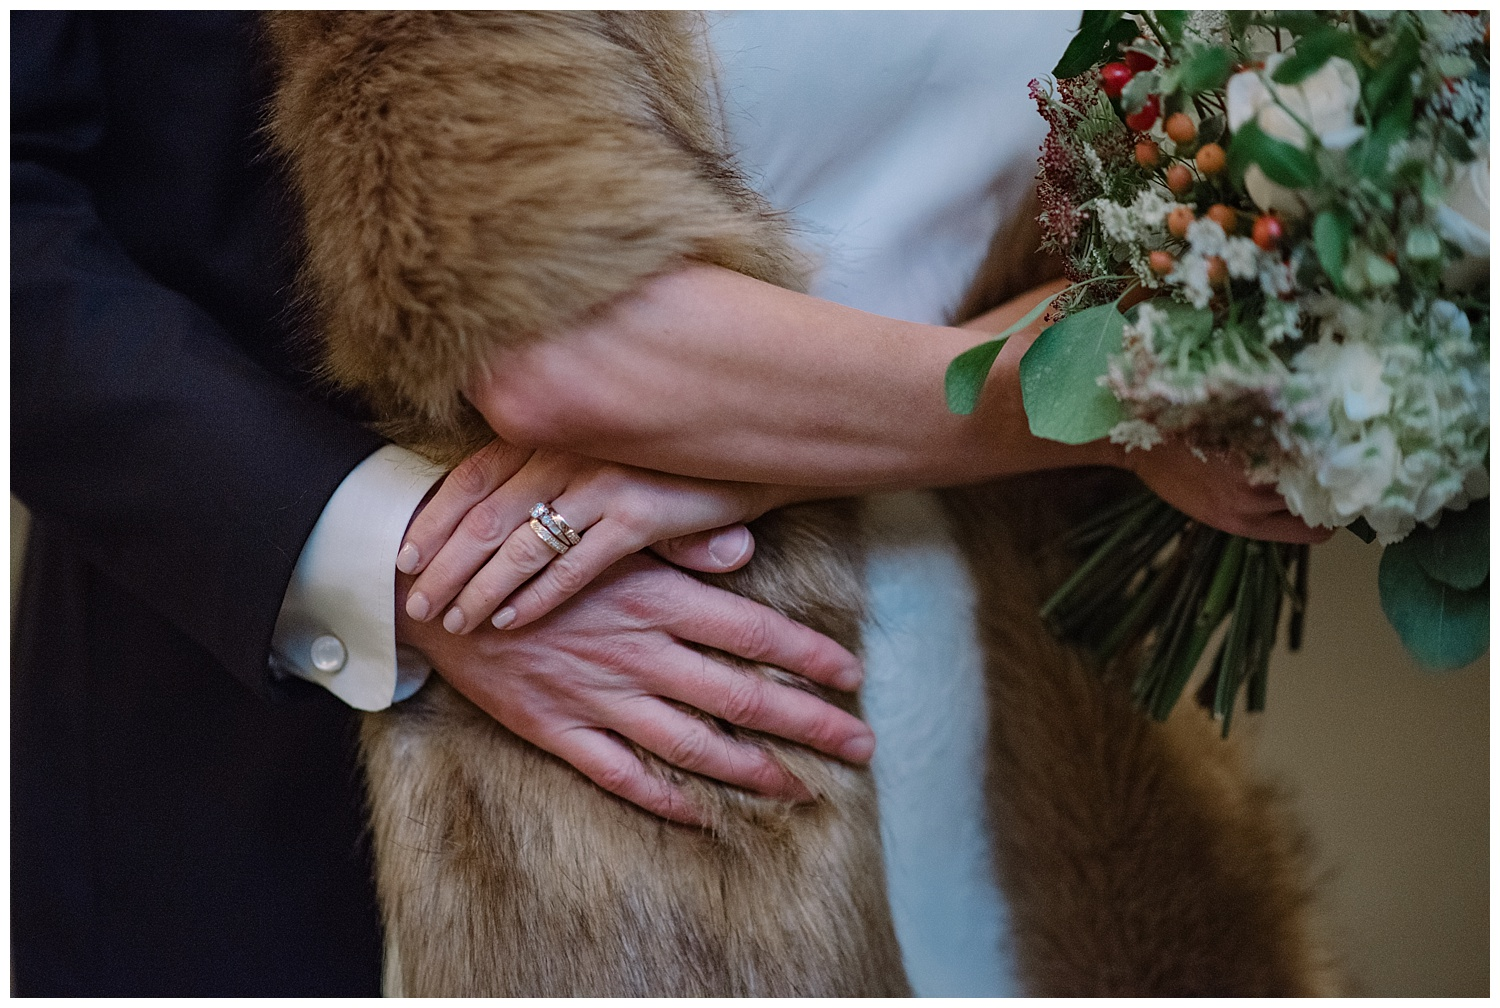 Close up of Bride & Groom Holding Hands | Lindsey & Jeff's Intimate Wedding at Grant Humphrey's Mansion | Denver Colorado | Farm Wedding Photographer | Apollo Fields Wedding Photojournalism